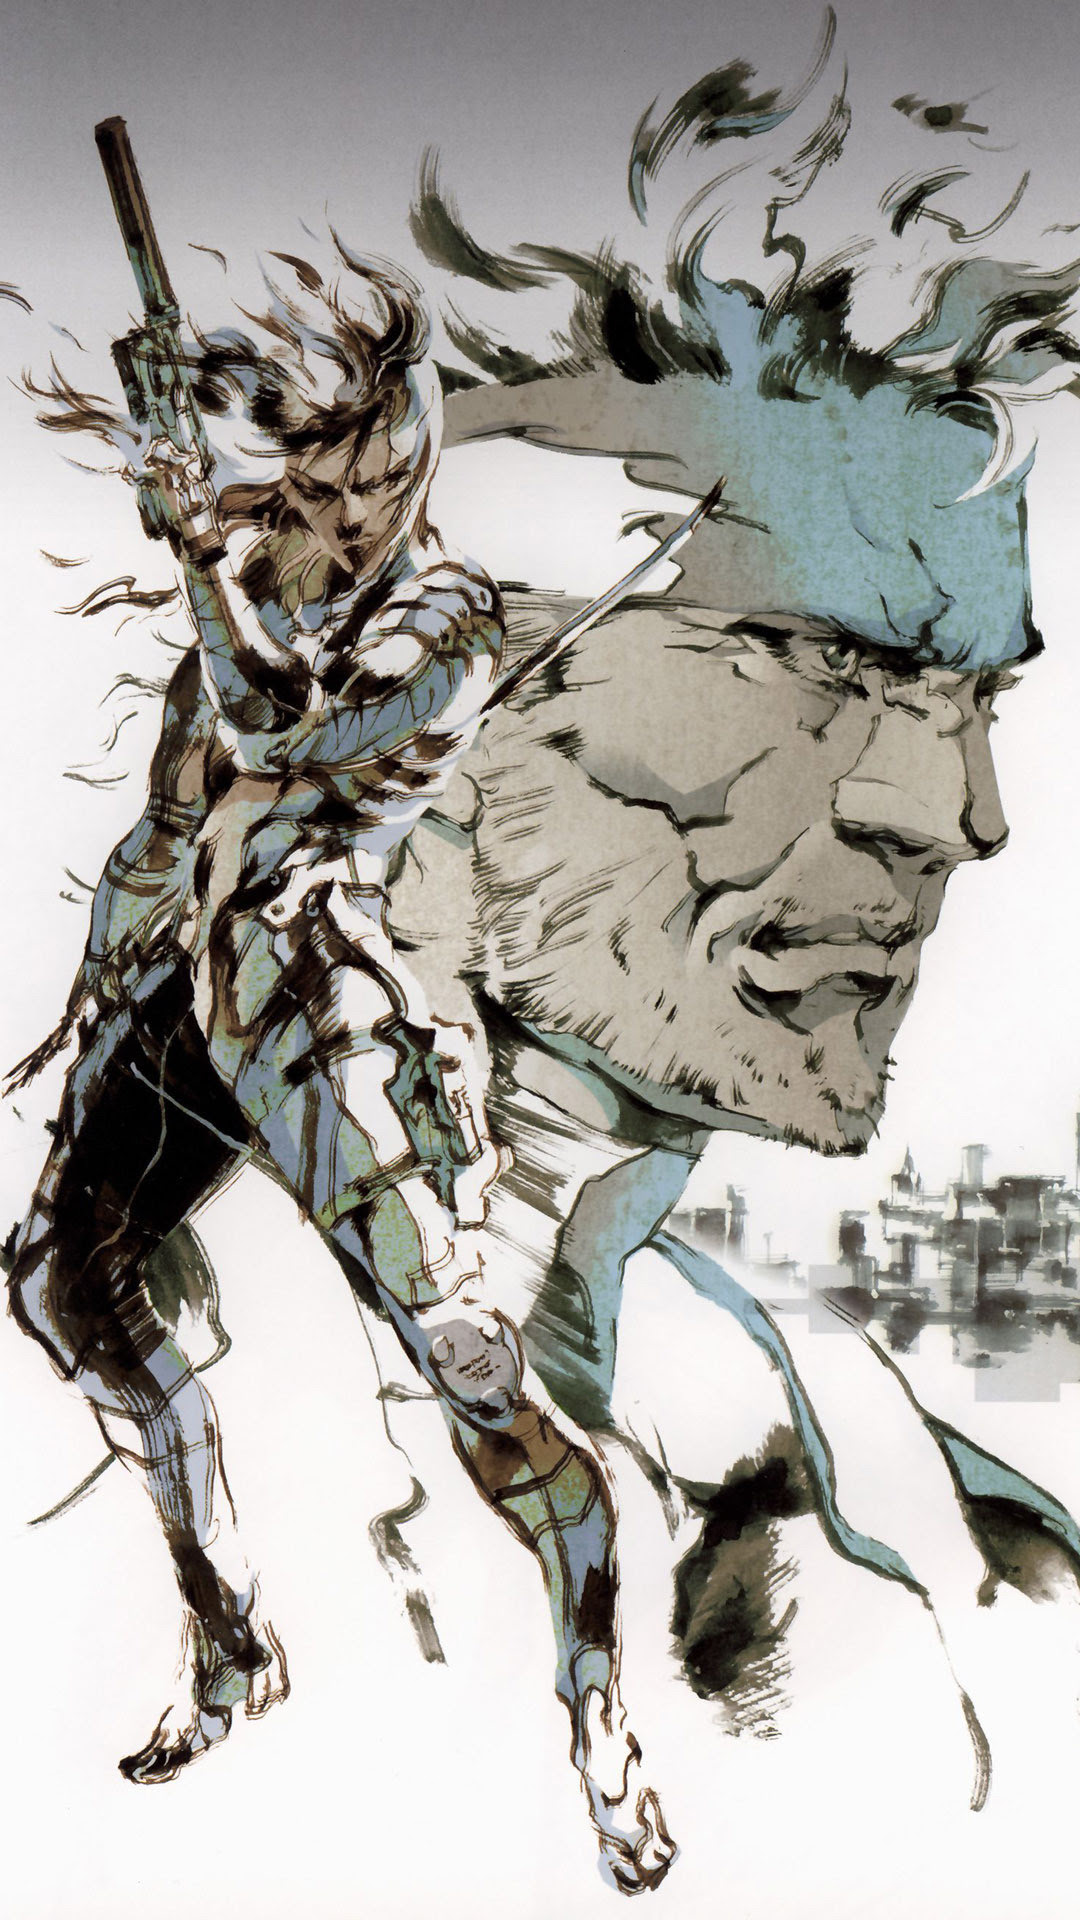 Mgs Phone Wallpaper 72 Images